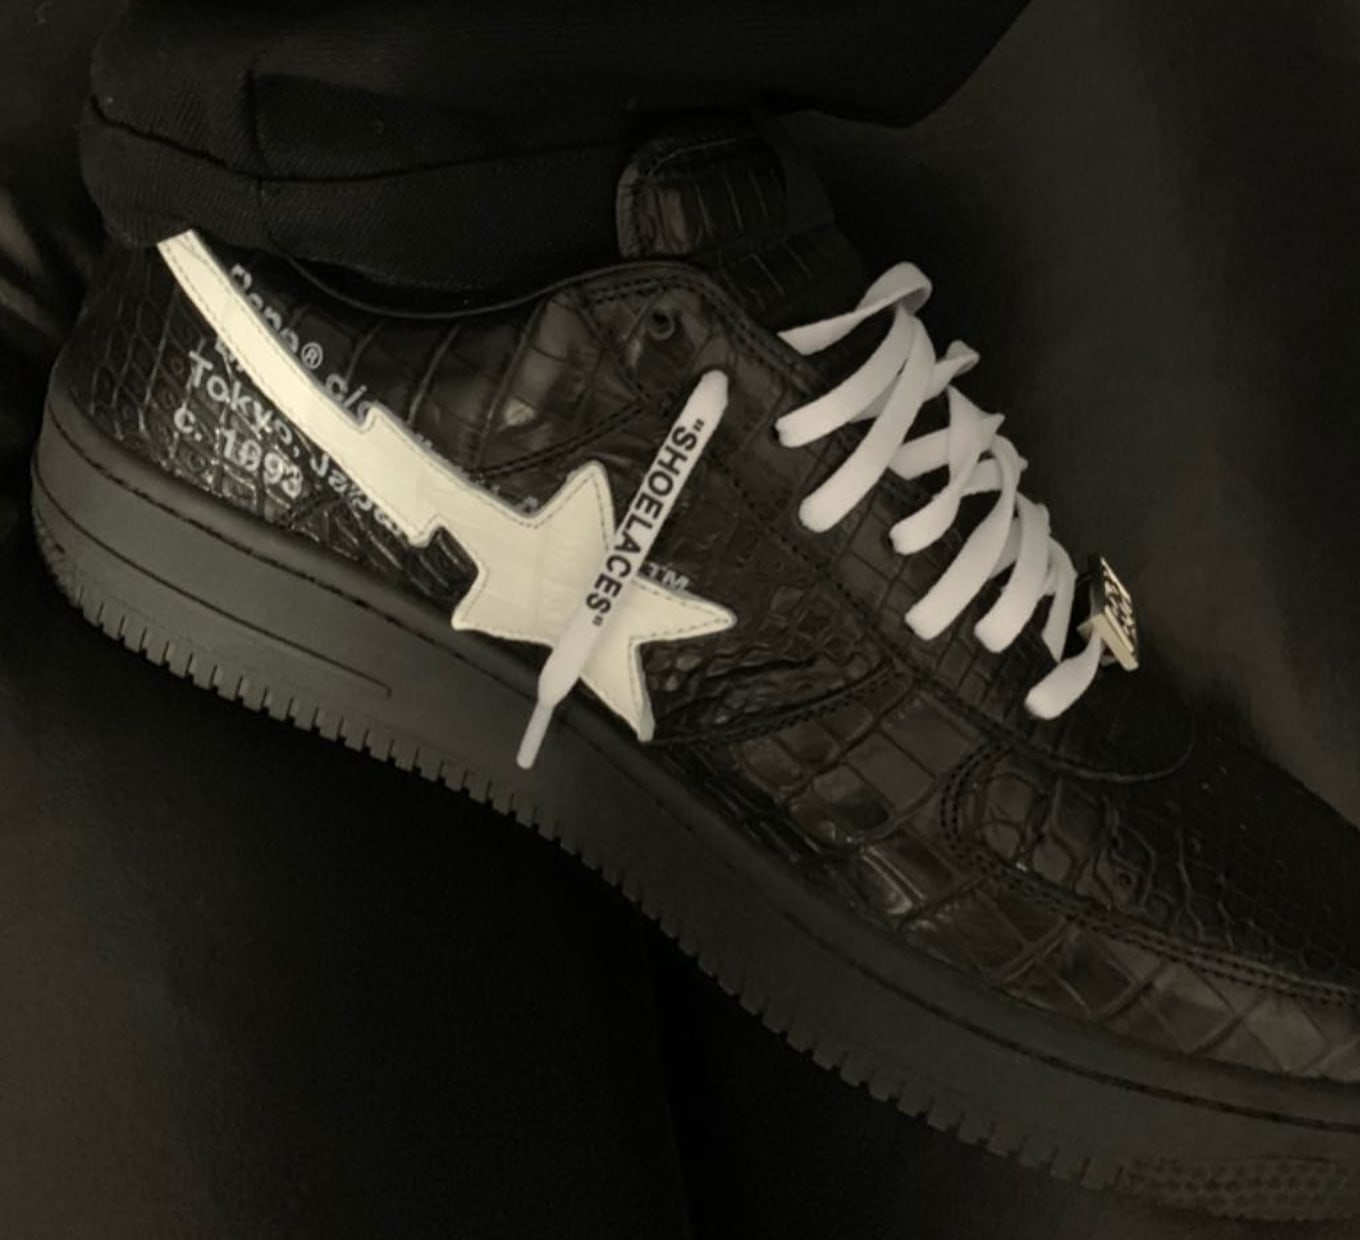 9825ee4a27cb Did Virgil Abloh Just Debut an Off-White x Bape Bapesta